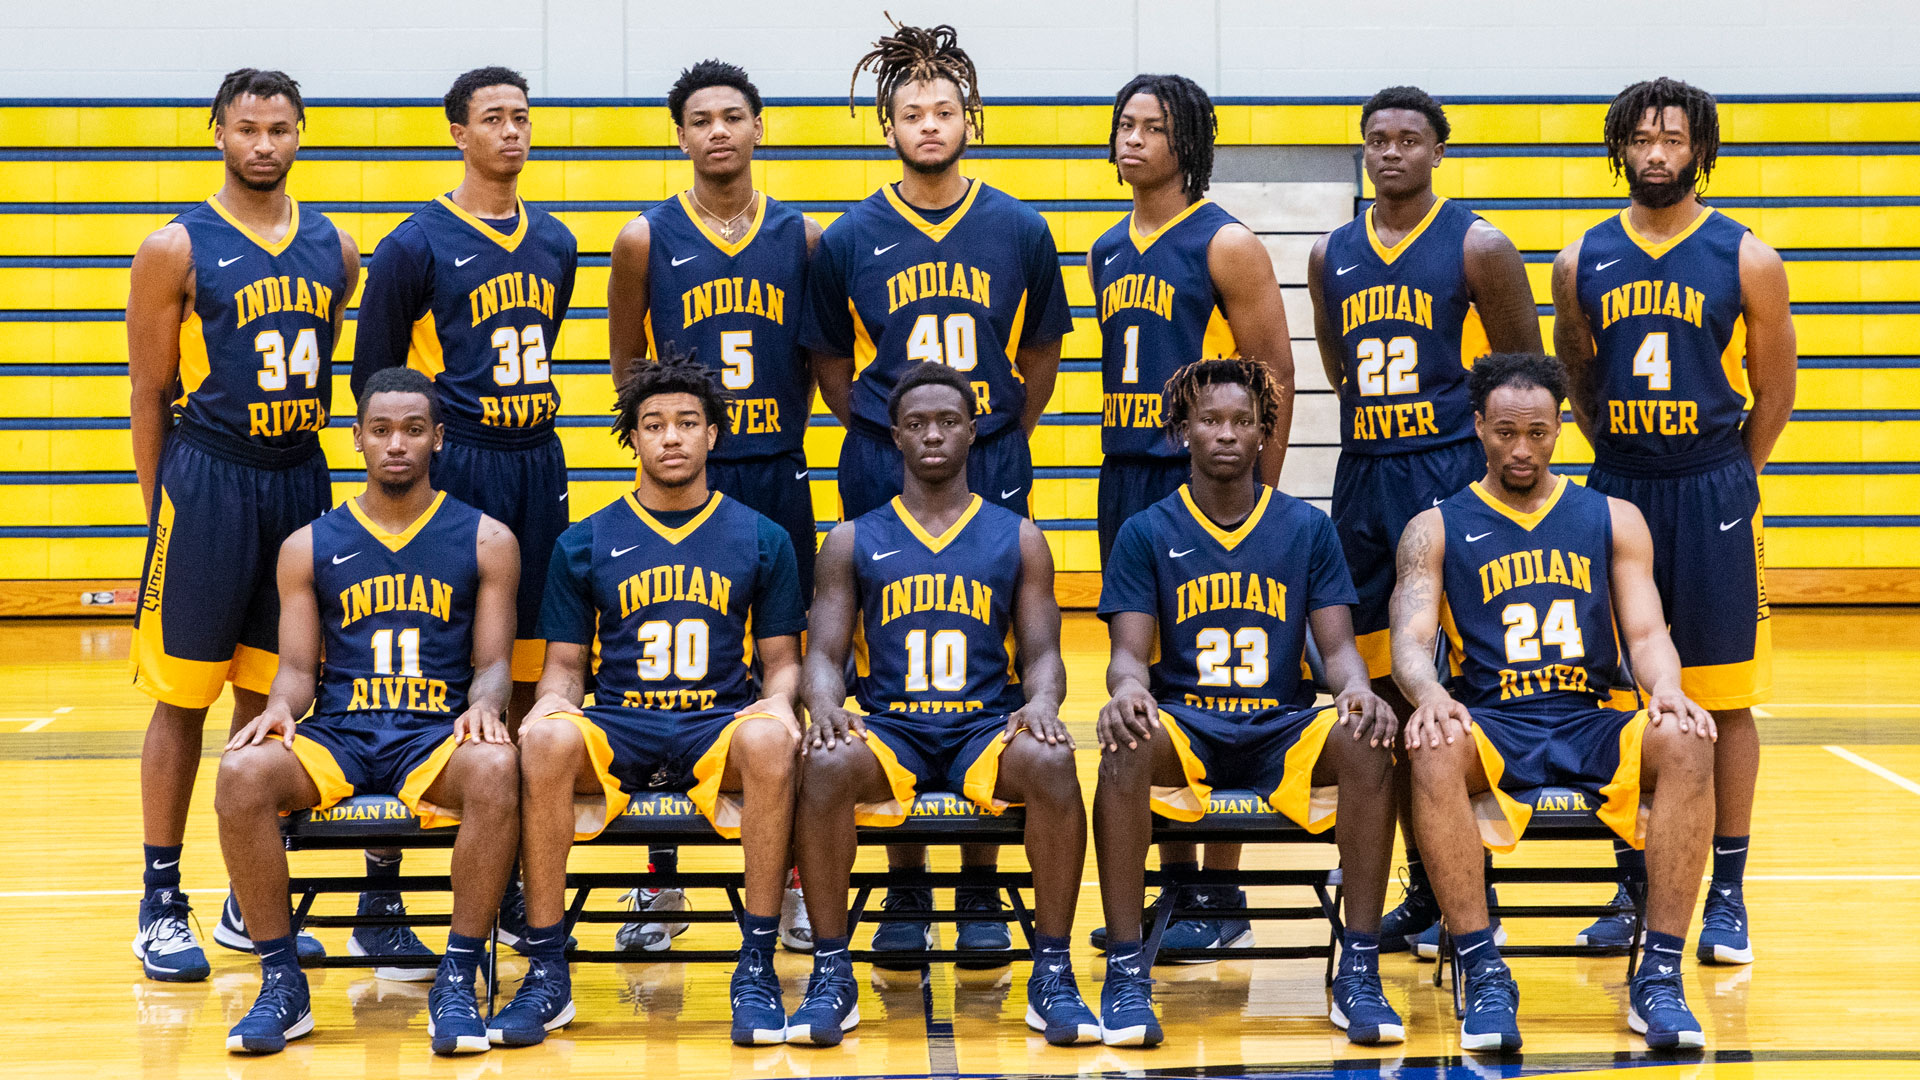 the 2020-21 IRSC Men's Basketball team